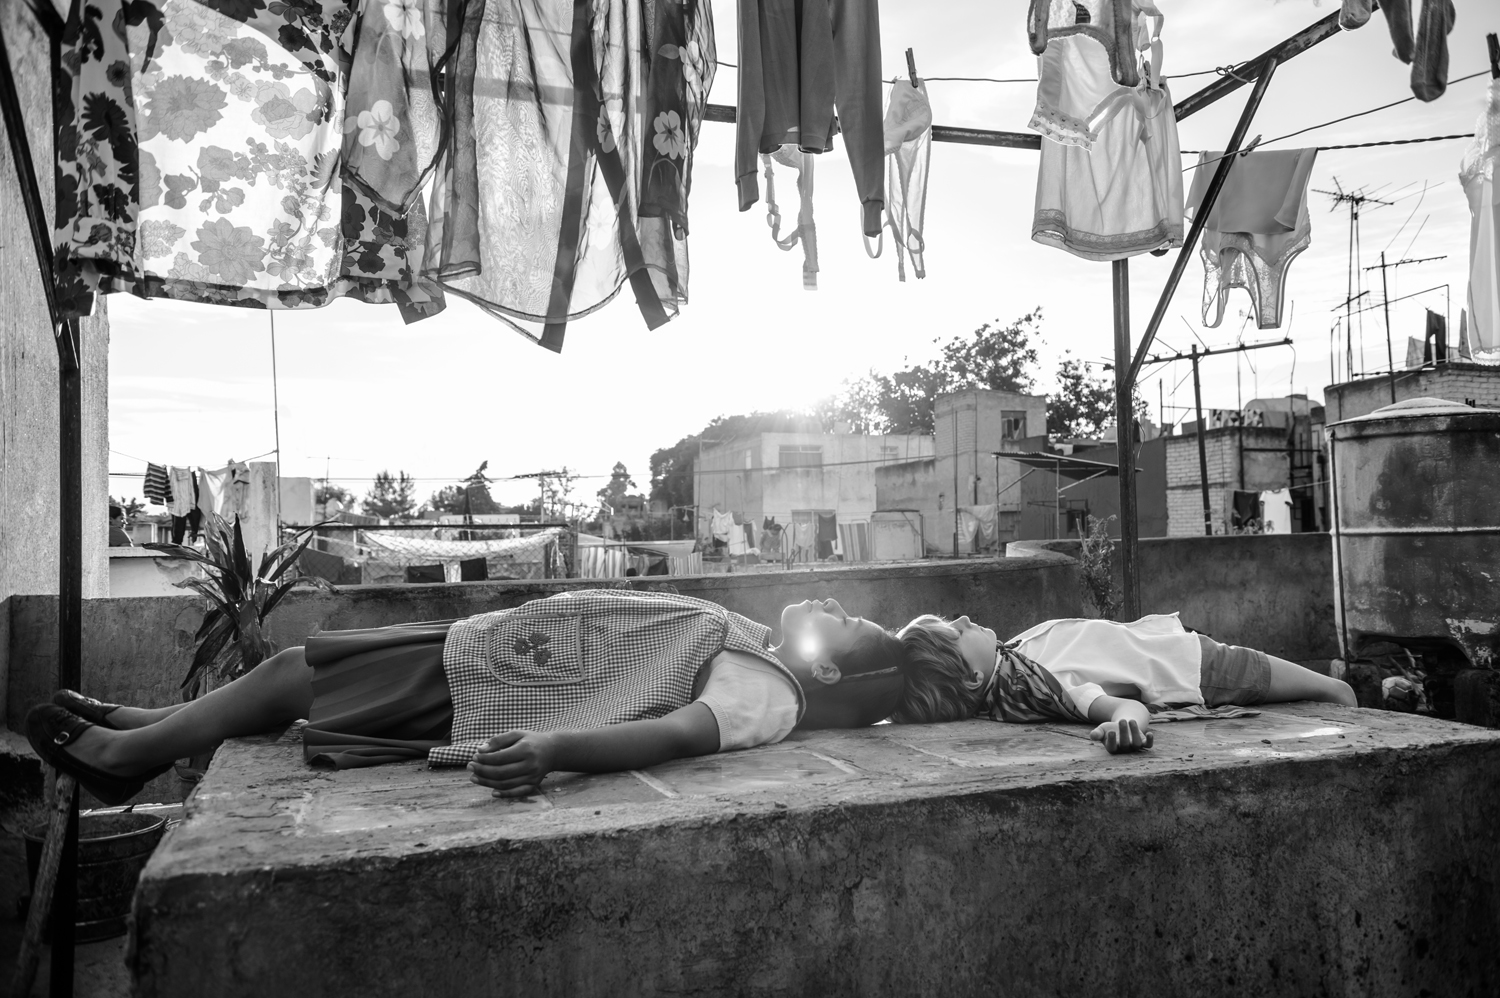 Roma to receive a day-and-date theatrical release on 100 screens